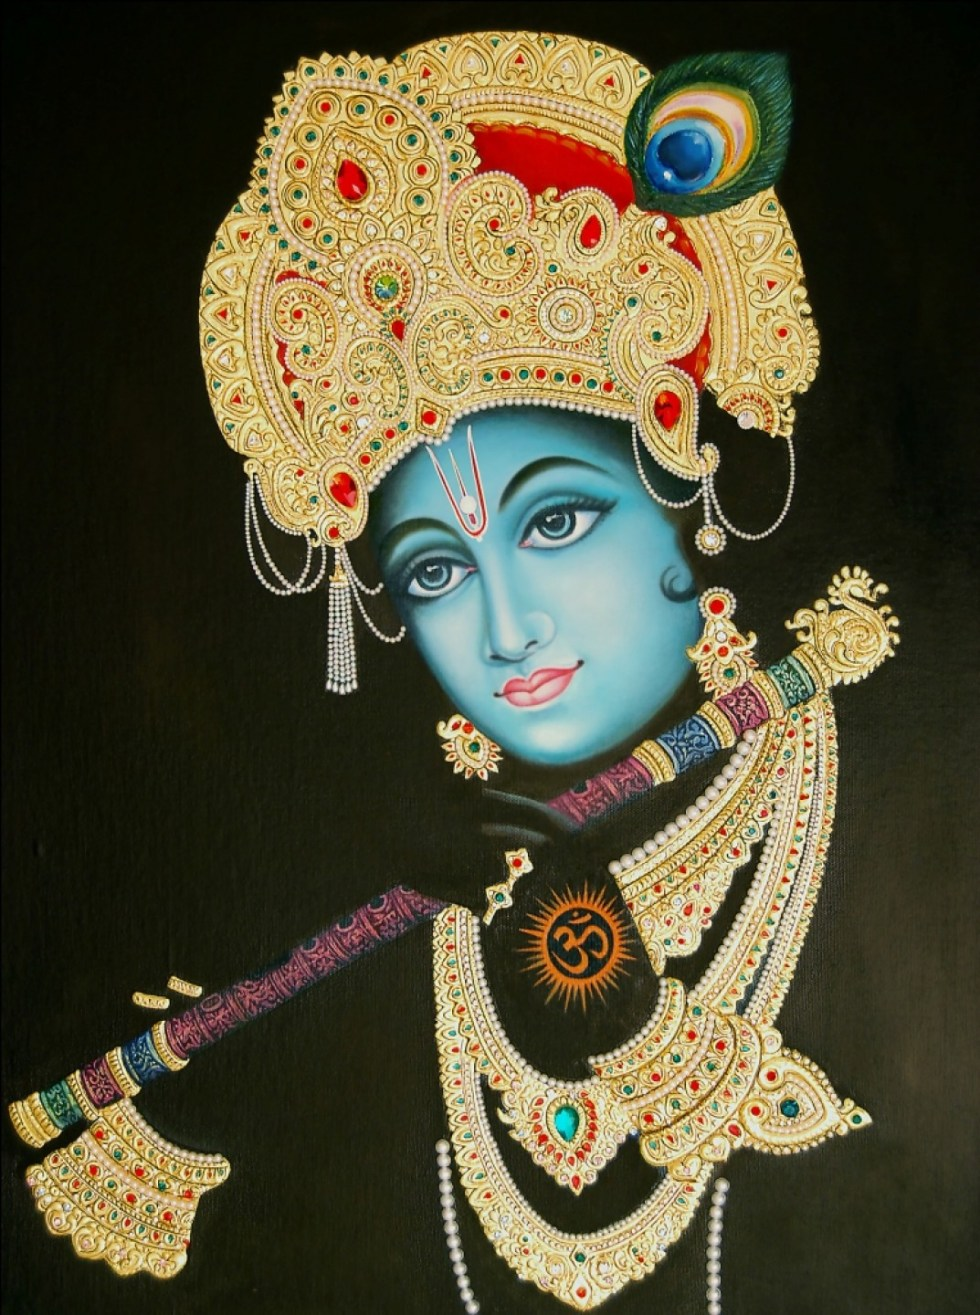 Lord Krishna, a major deity in Hinduism, wearing the famous crown from which Hawa Mahal took its design.